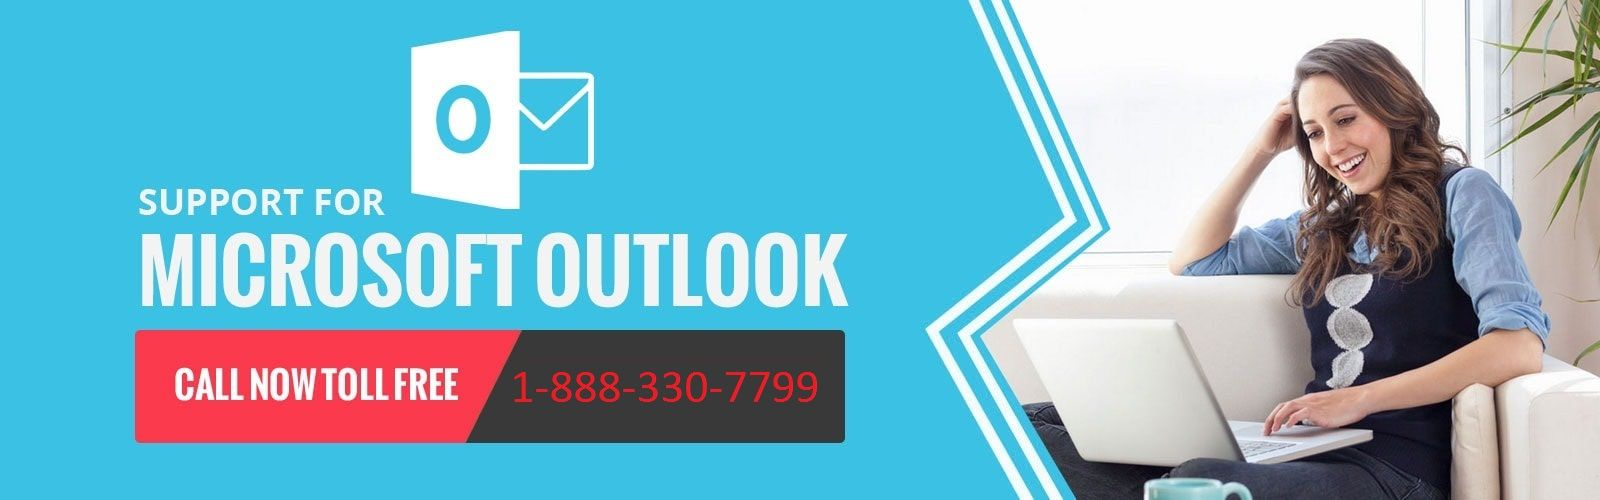 How to configure outlook with gmail account Microsoft